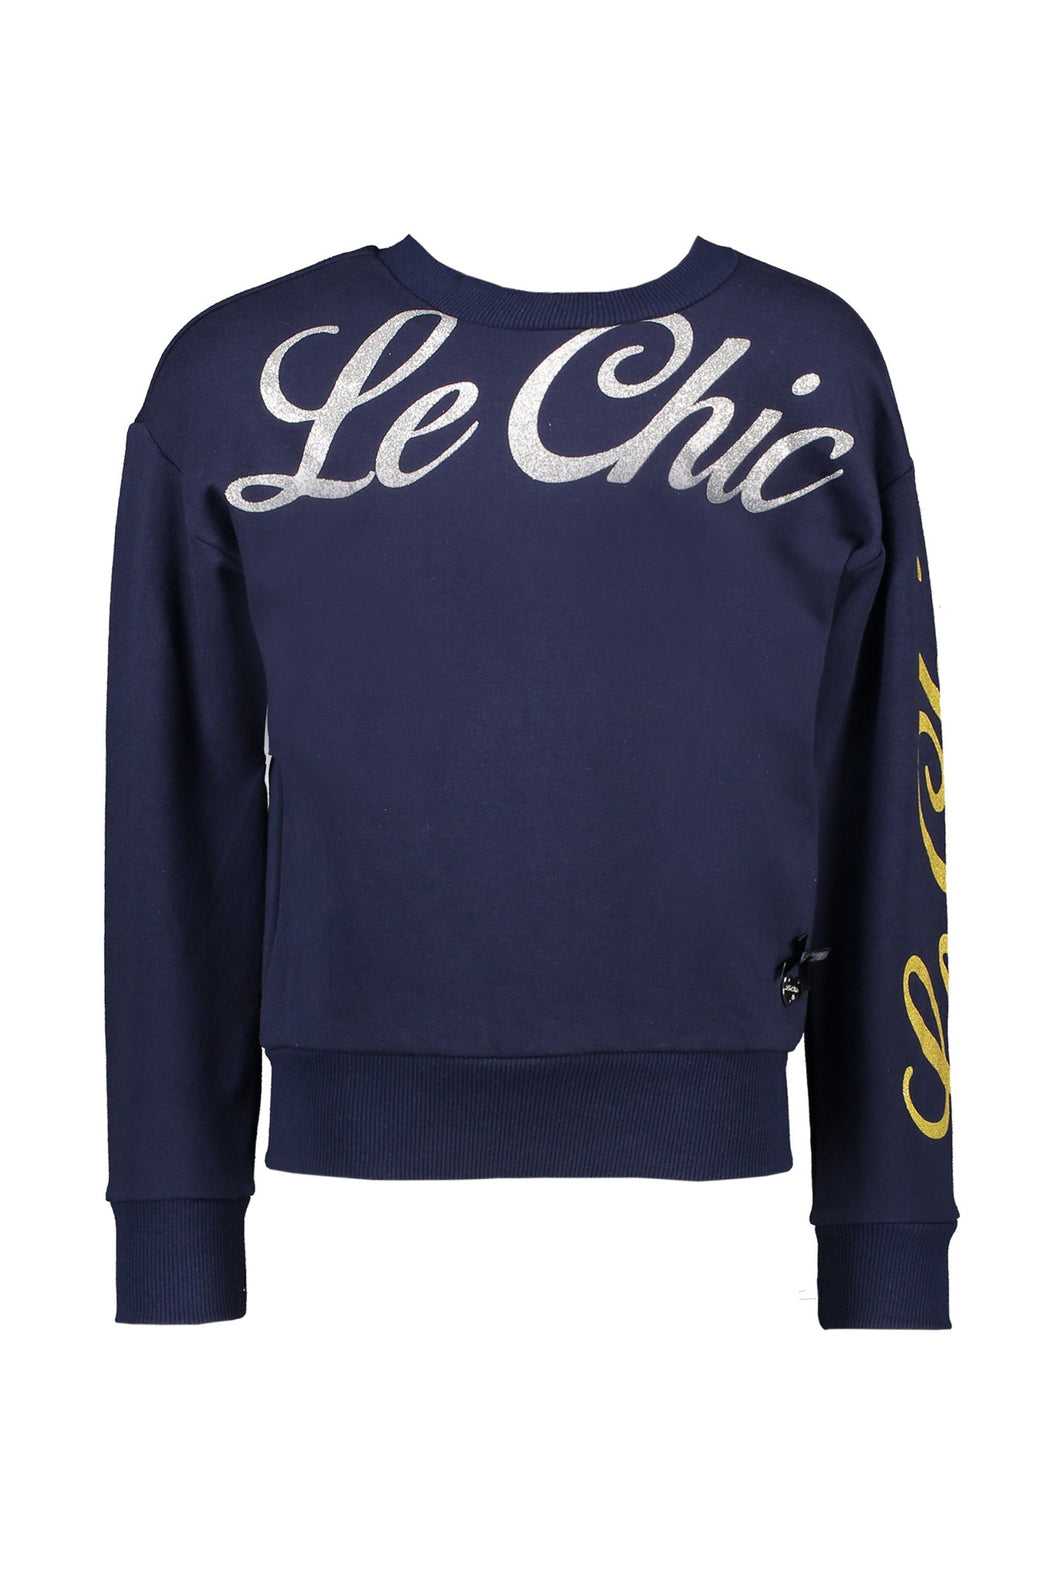 Le Chic Girls Navy Logo Sweatshirt